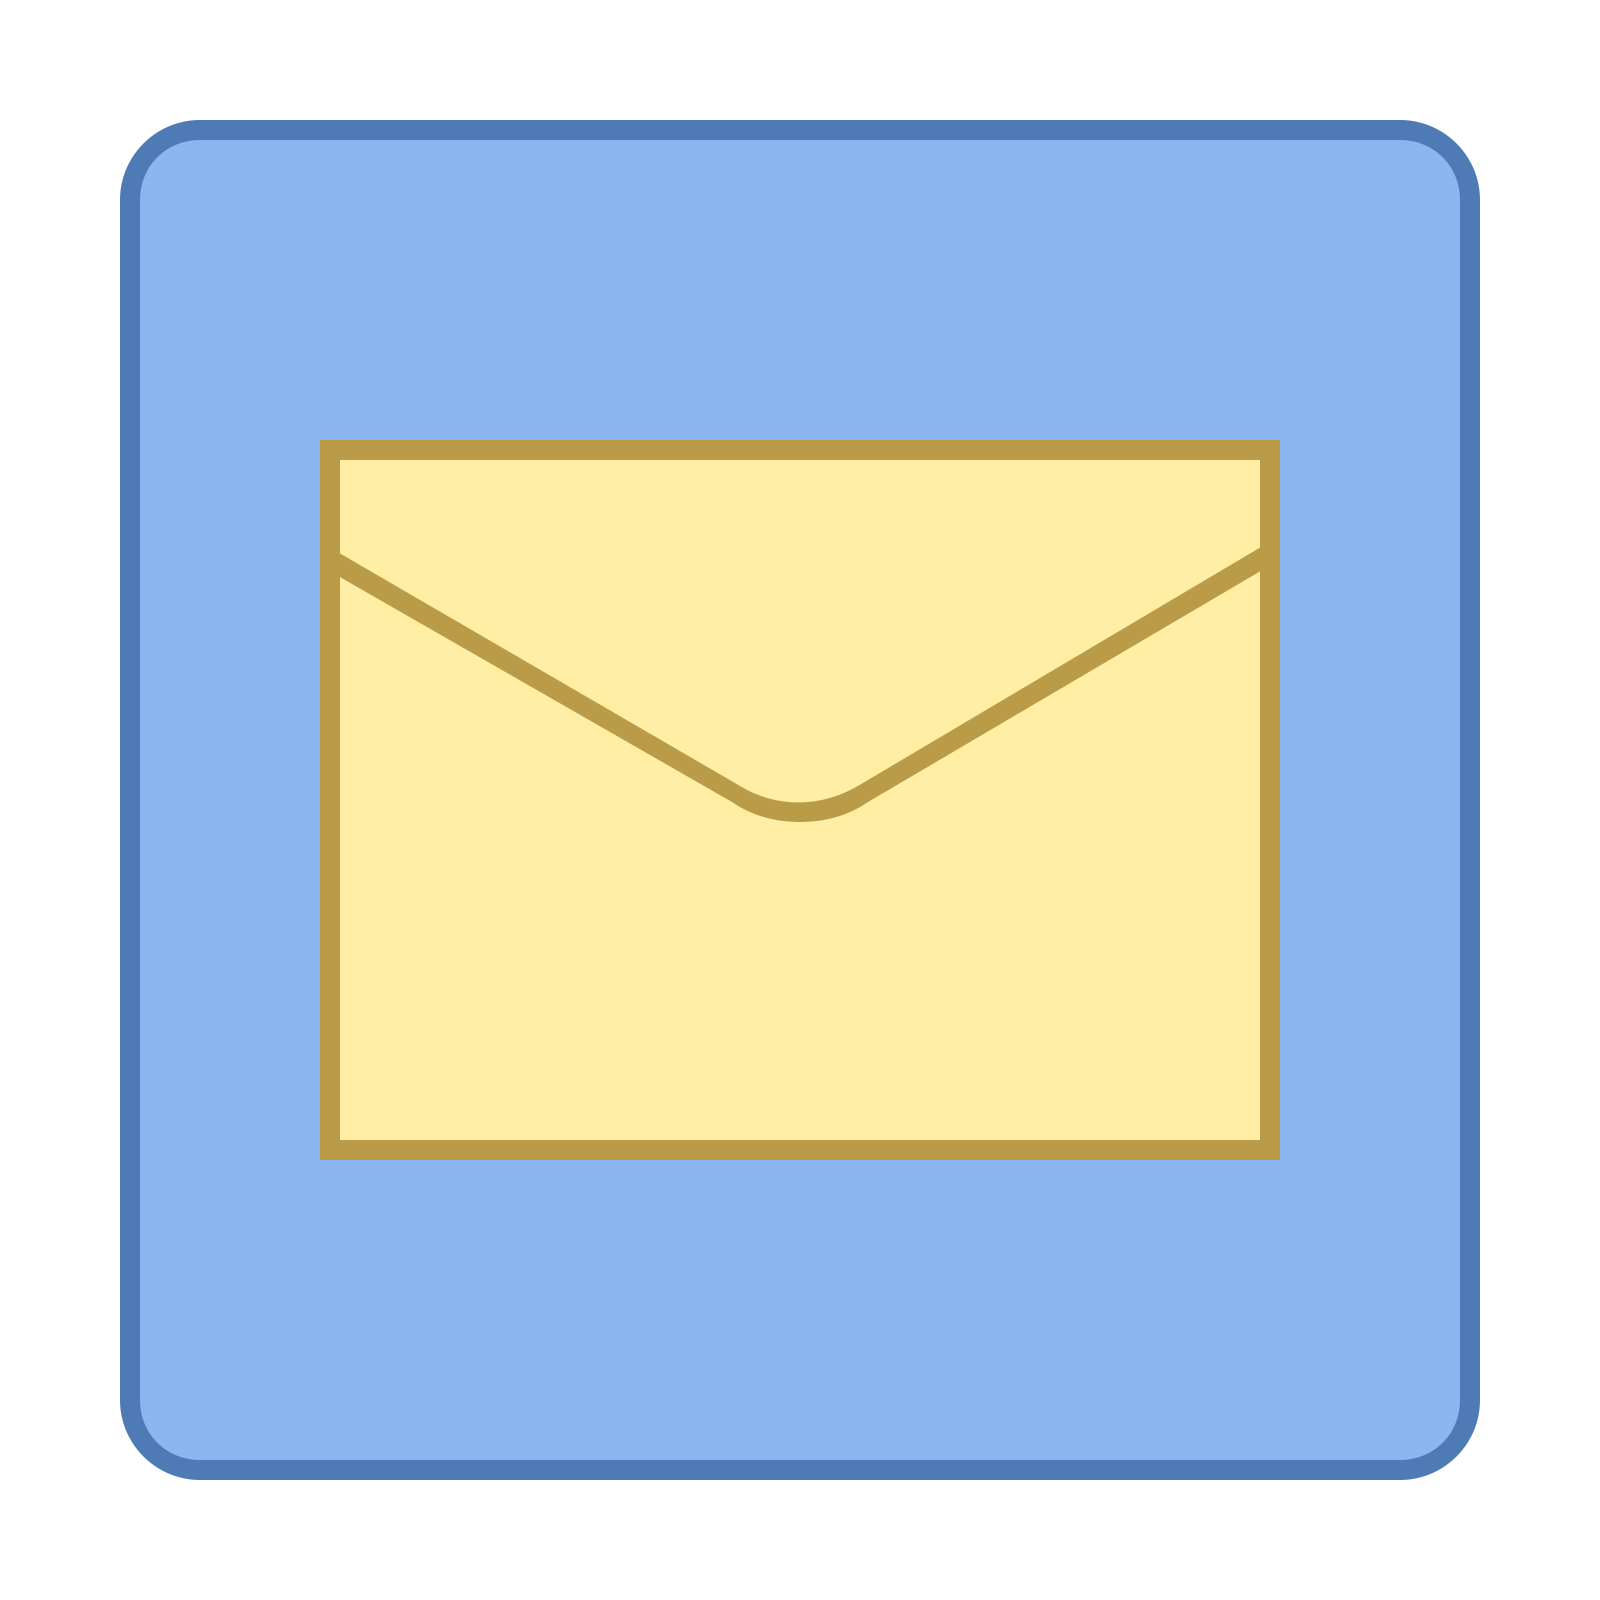 Postit vector icon. Post free download png